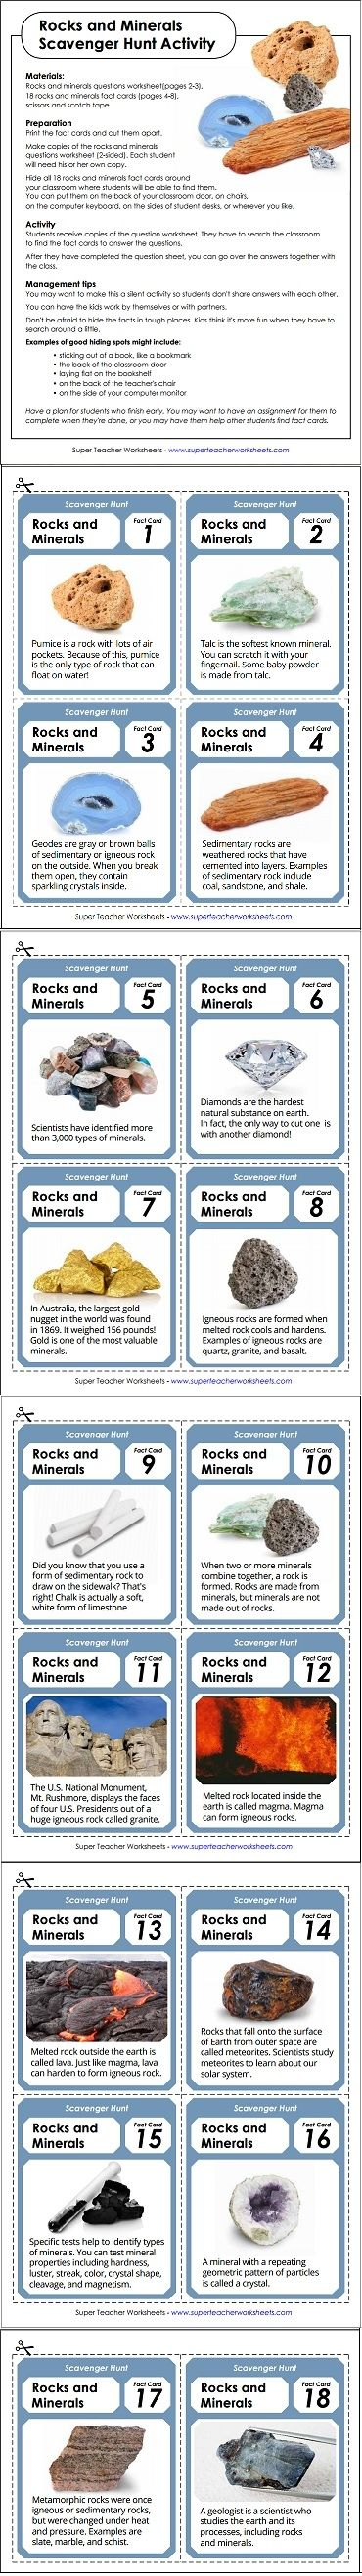 Rocks And Minerals Scavenger Hunt Rocks And Minerals Earth Science Fourth Grade Science